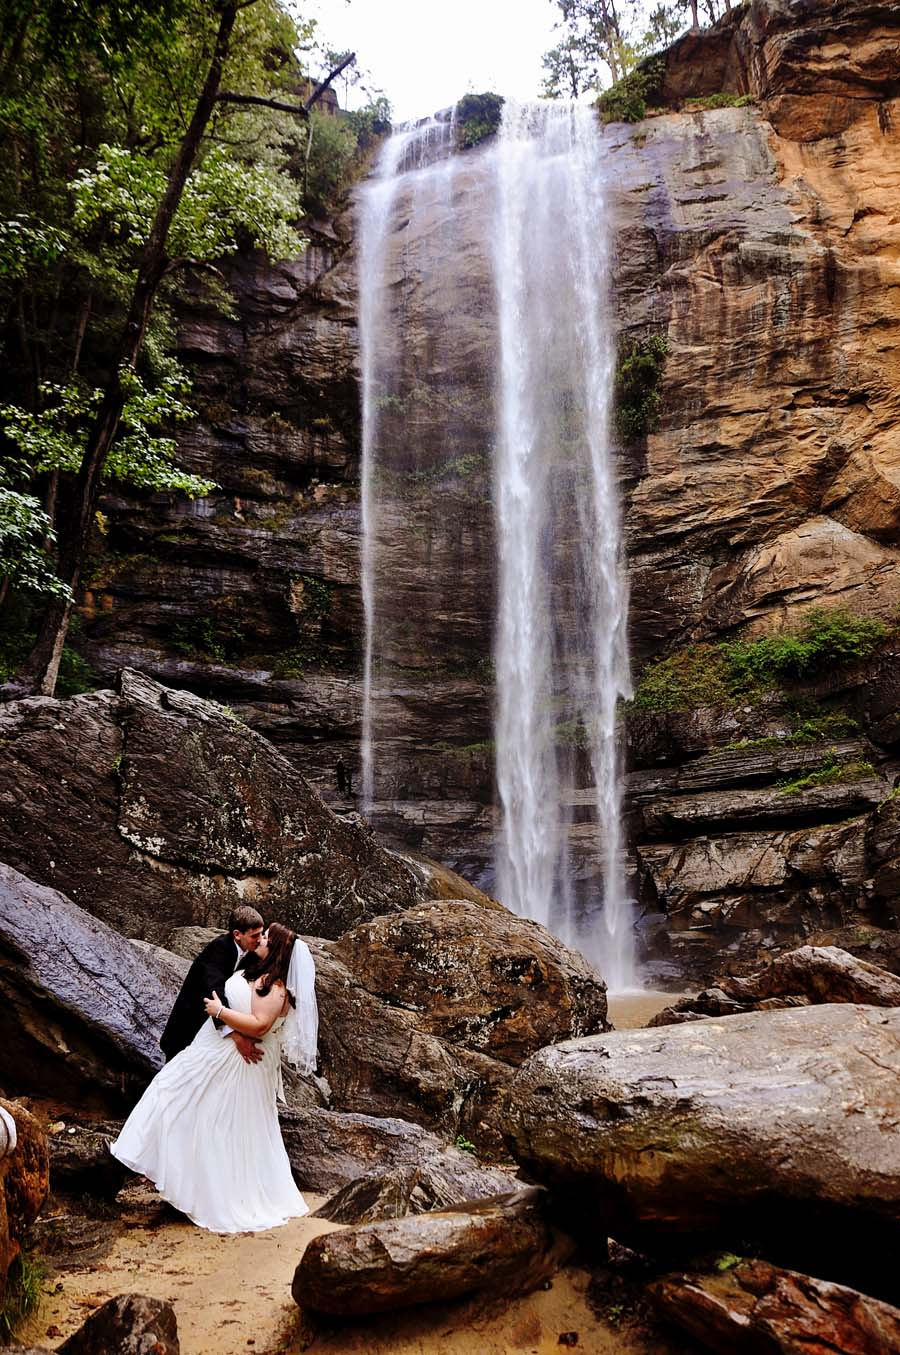 Toccoa Falls Private Waterfall Wedding Location